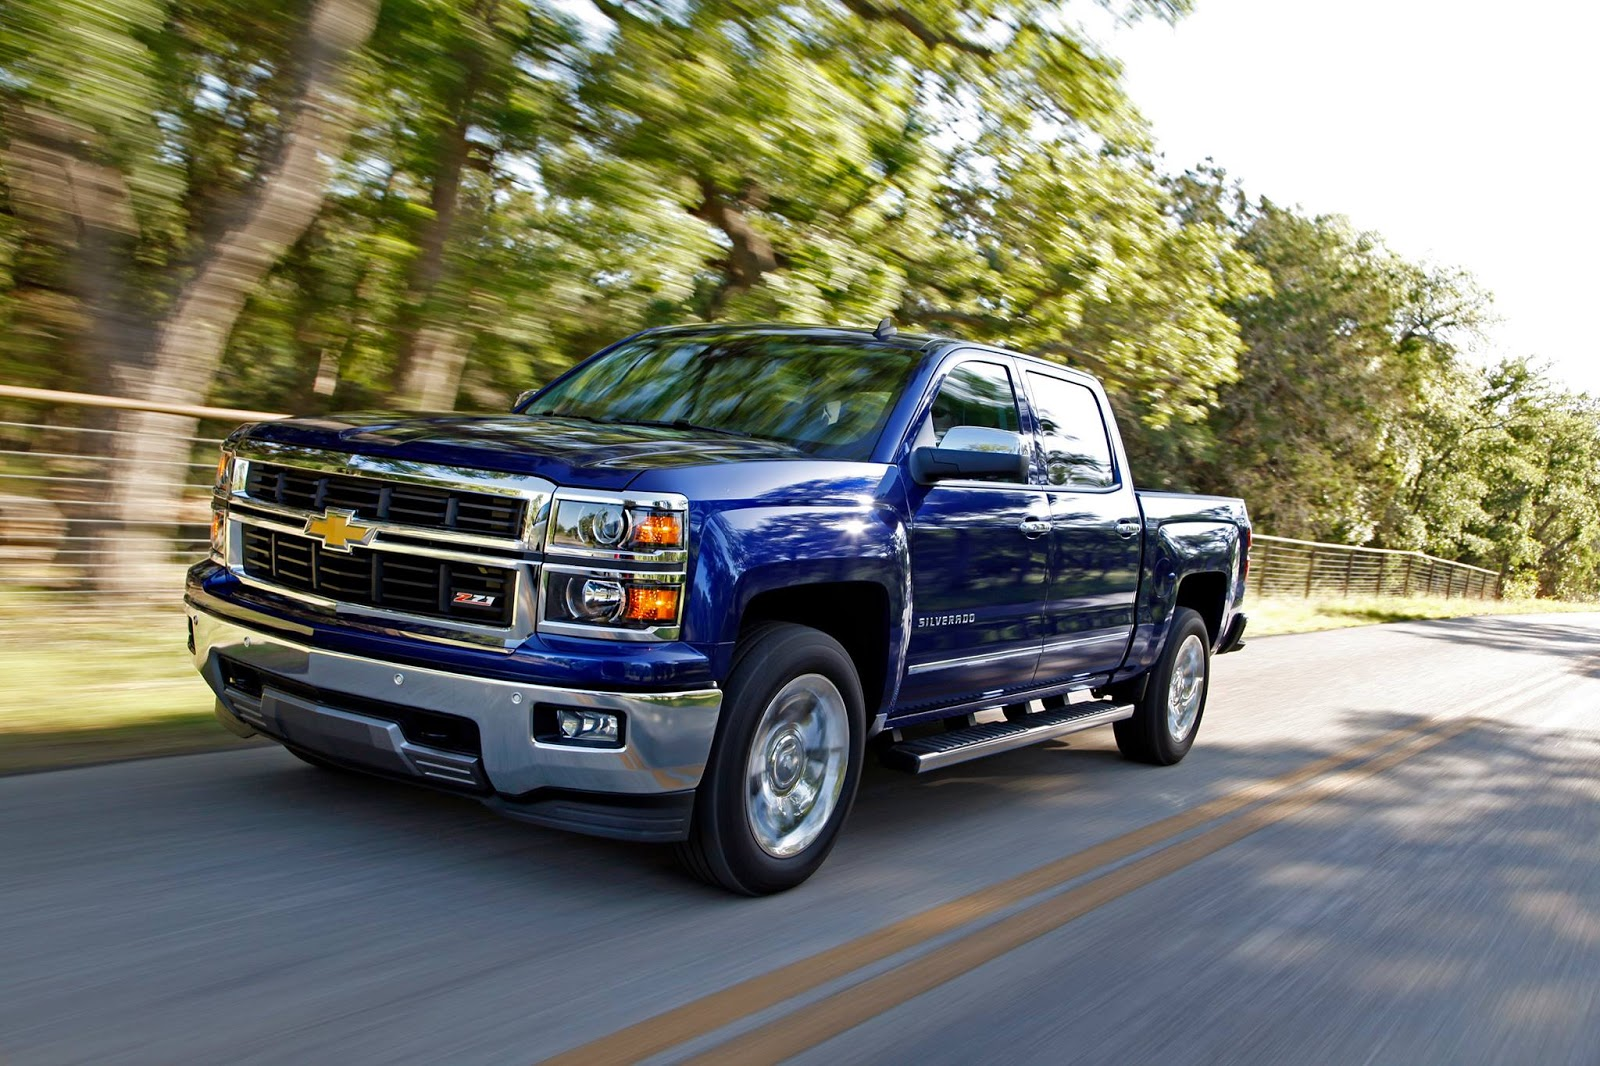 2014 Chevy Silverado 1500 First Pickup Ever to Receive Highest Possible Safety Rating